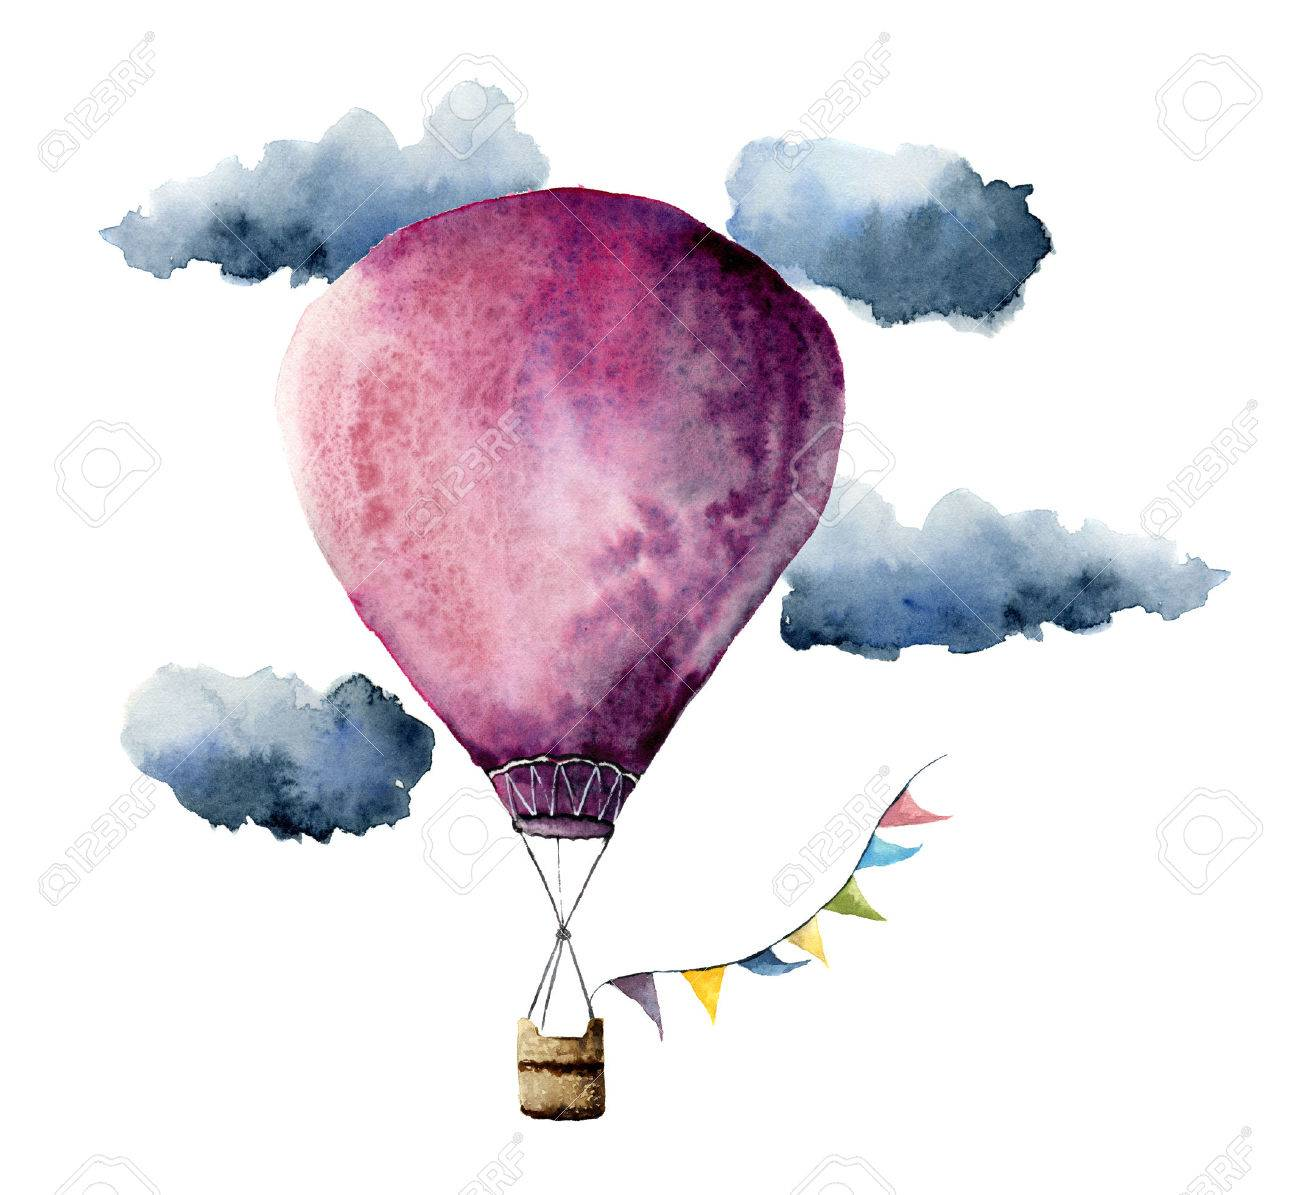 Watercolor violet hot air balloon. Hand painted vintage air balloons with flags garlands, clouds and retro design. Illustrations isolated on white background - 71124136